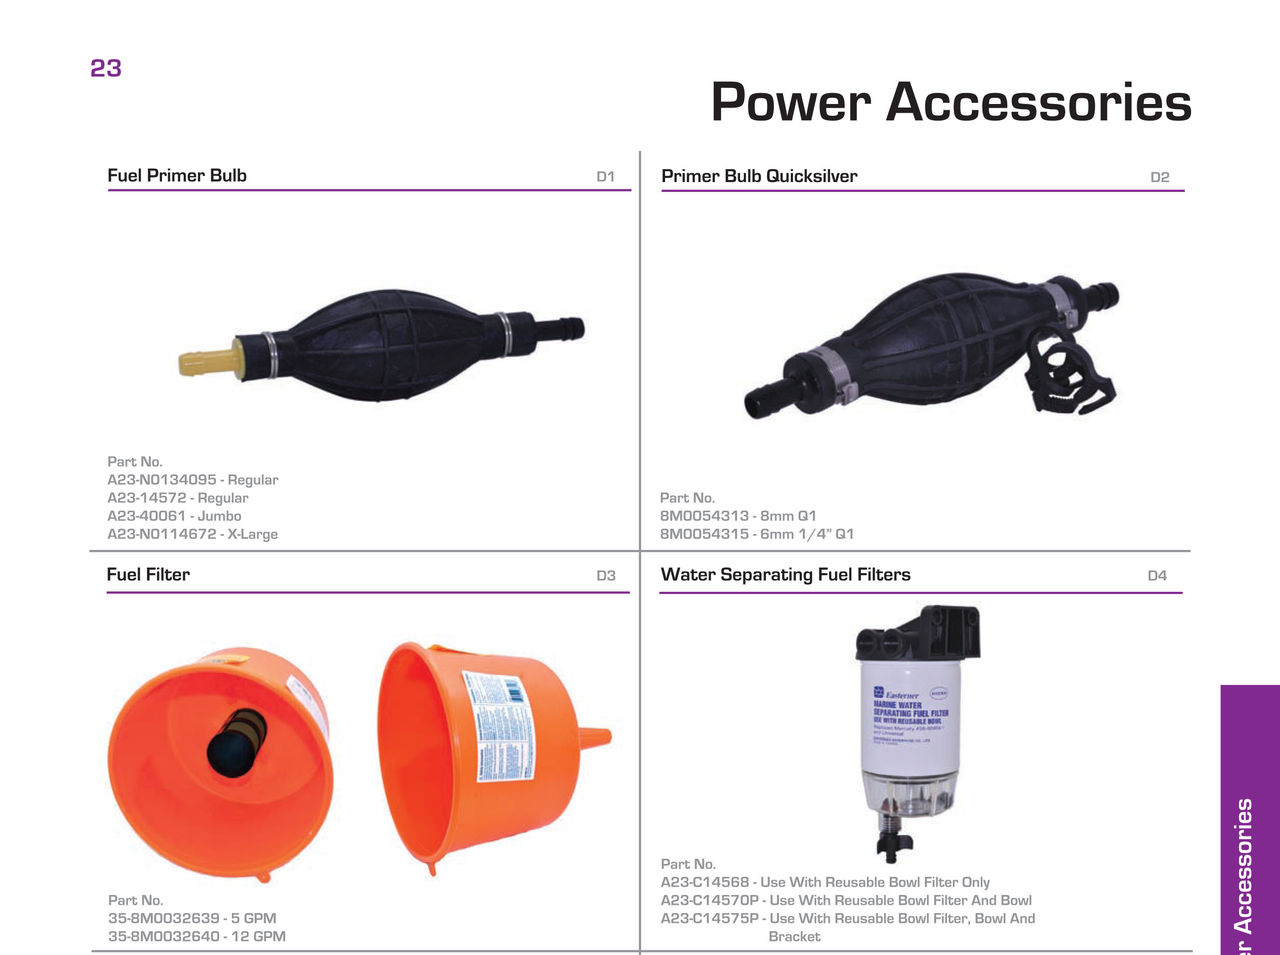 Boat Parts And Supplies : Boat accessories